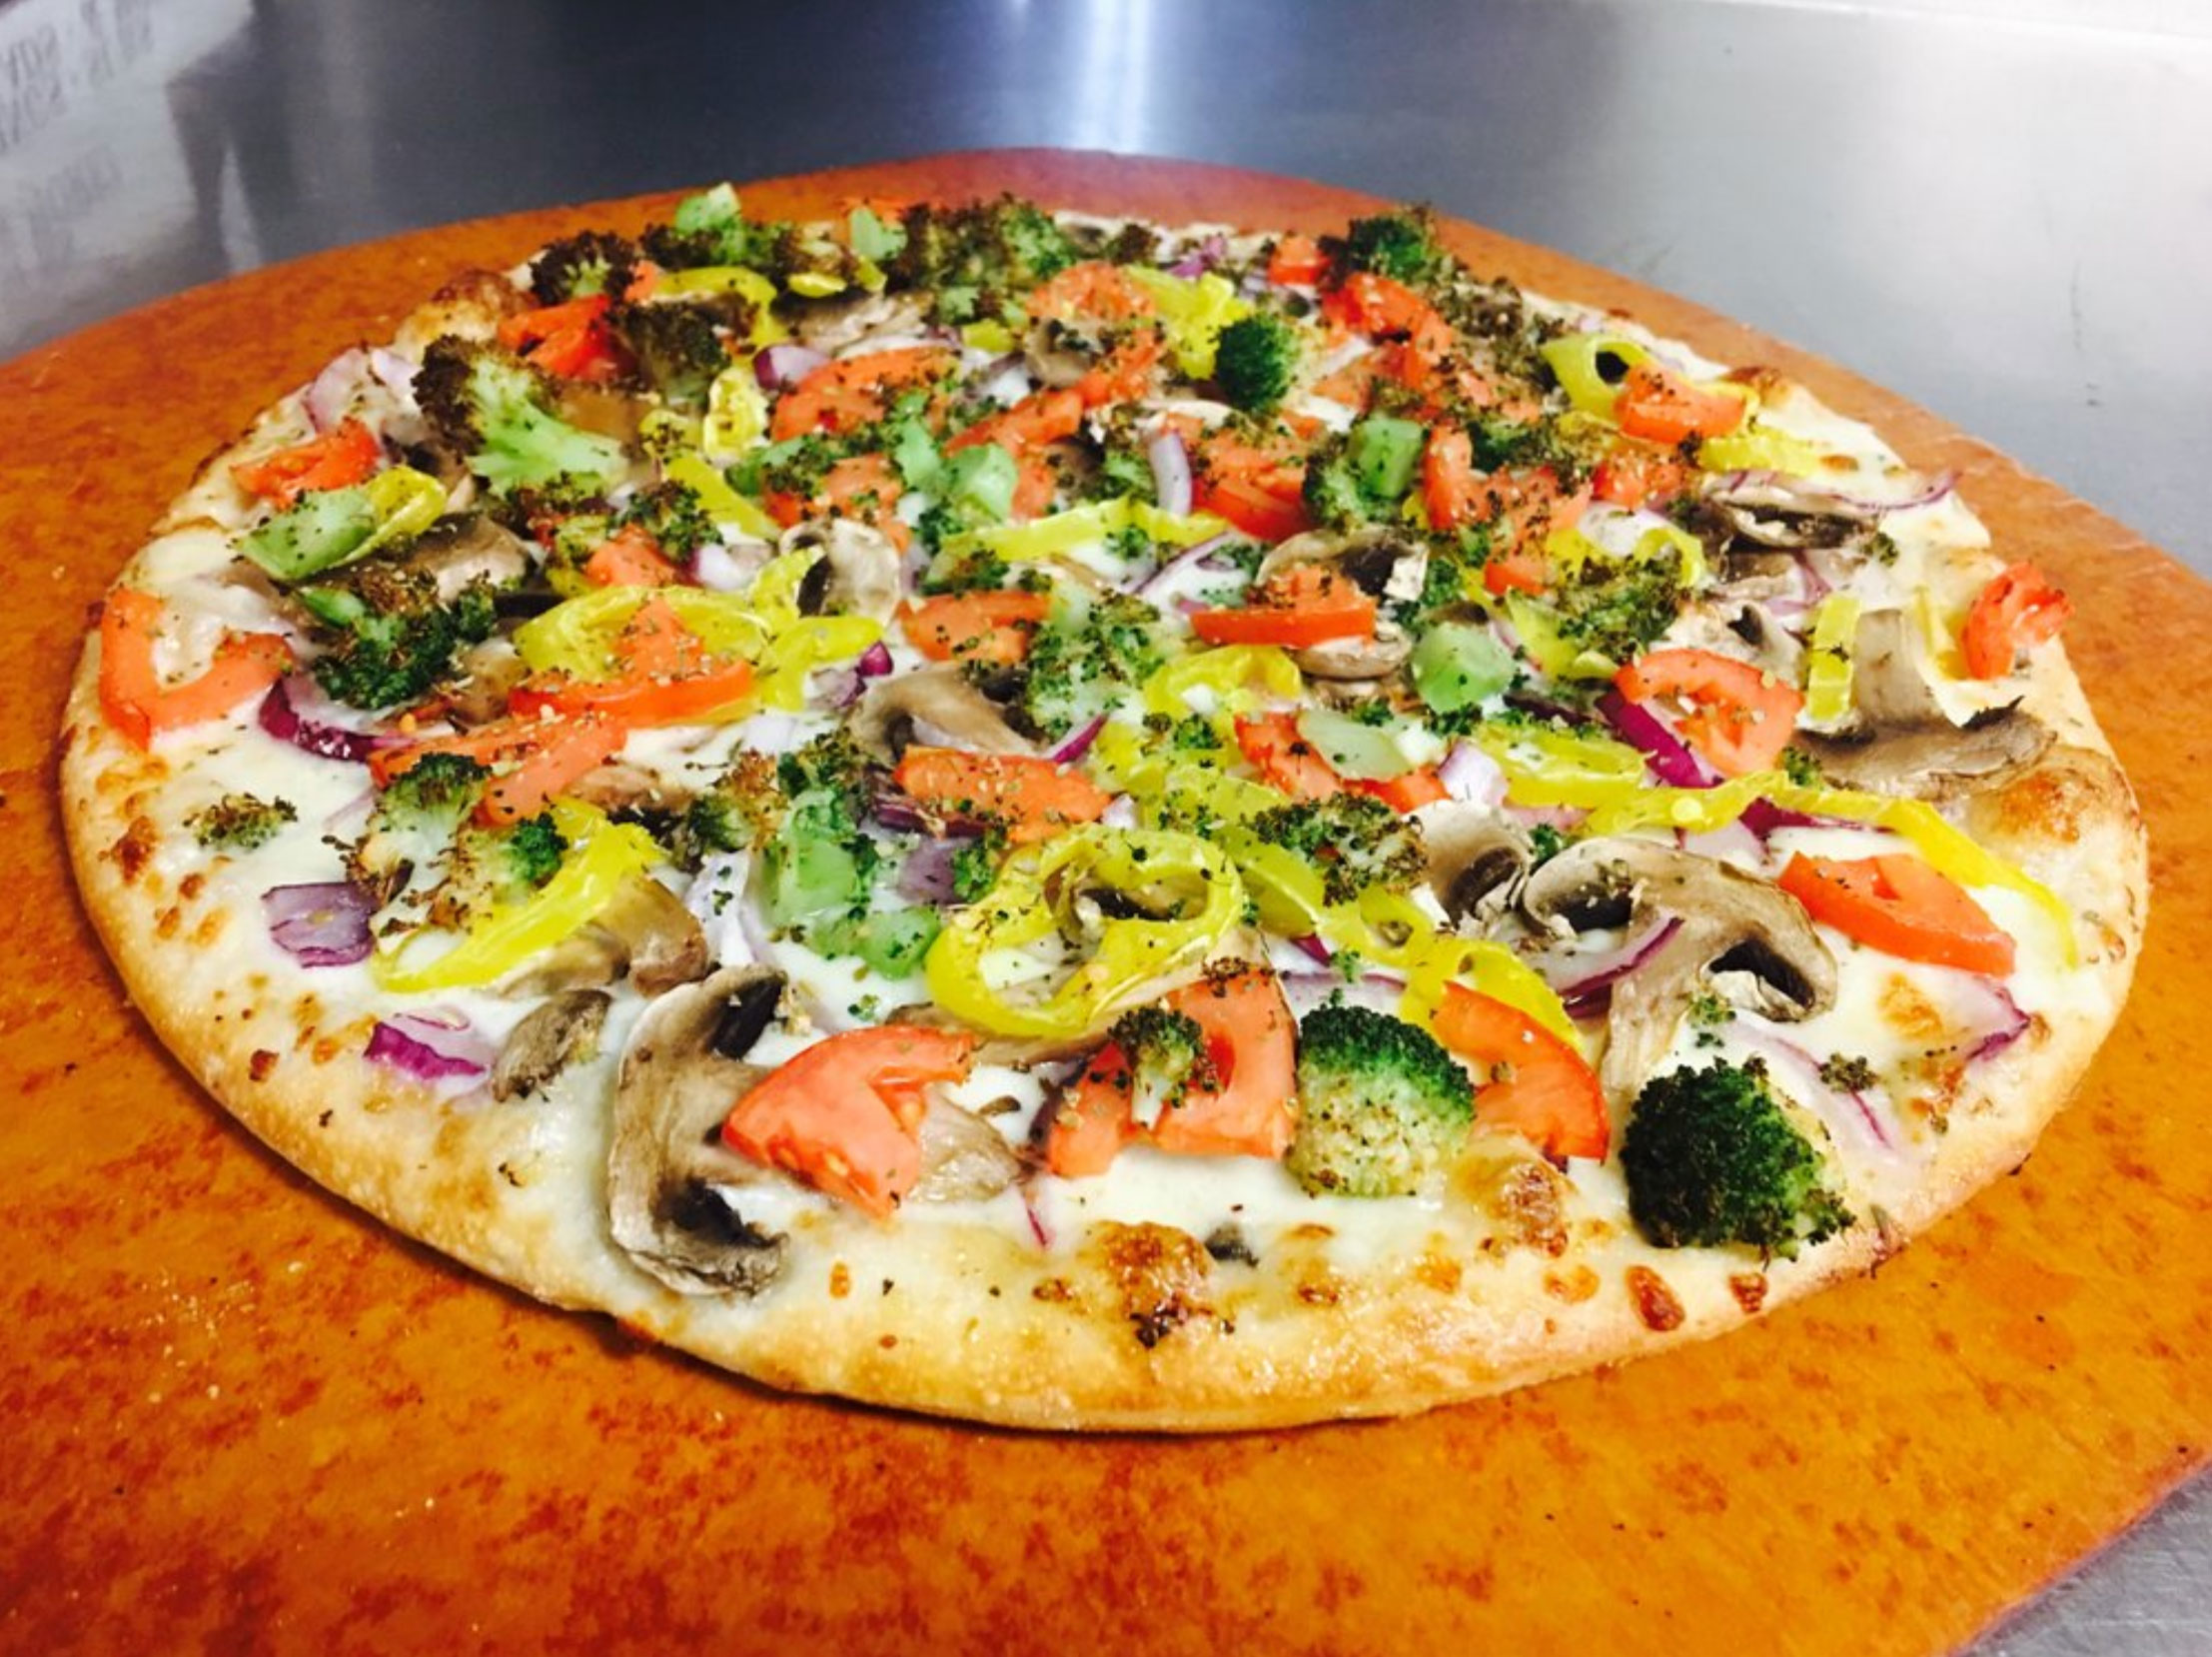 Banana peppers mushrooms tomatoes onions broccoli cheese pizza vegetables